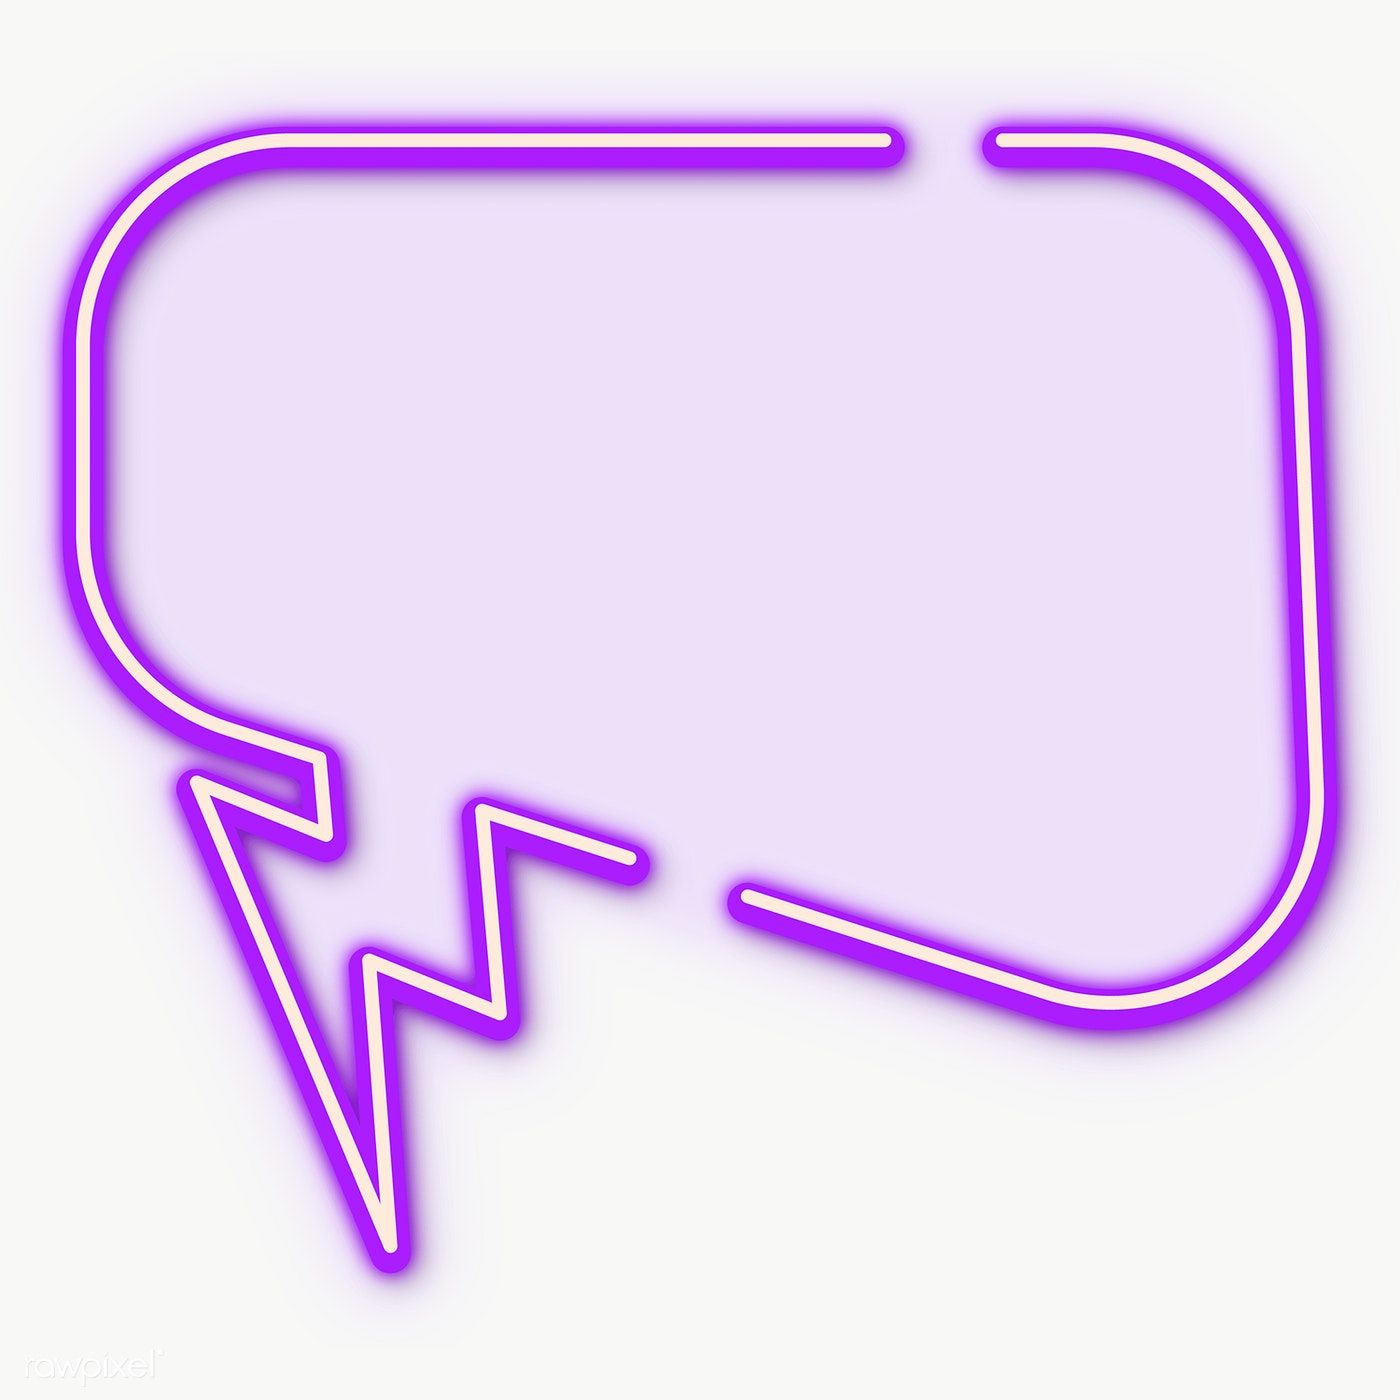 Purple Speech Balloon Design Element Transparent Png Free Image By Rawpixel Com Katie In 2020 Balloon Design Design Element Speech Balloon